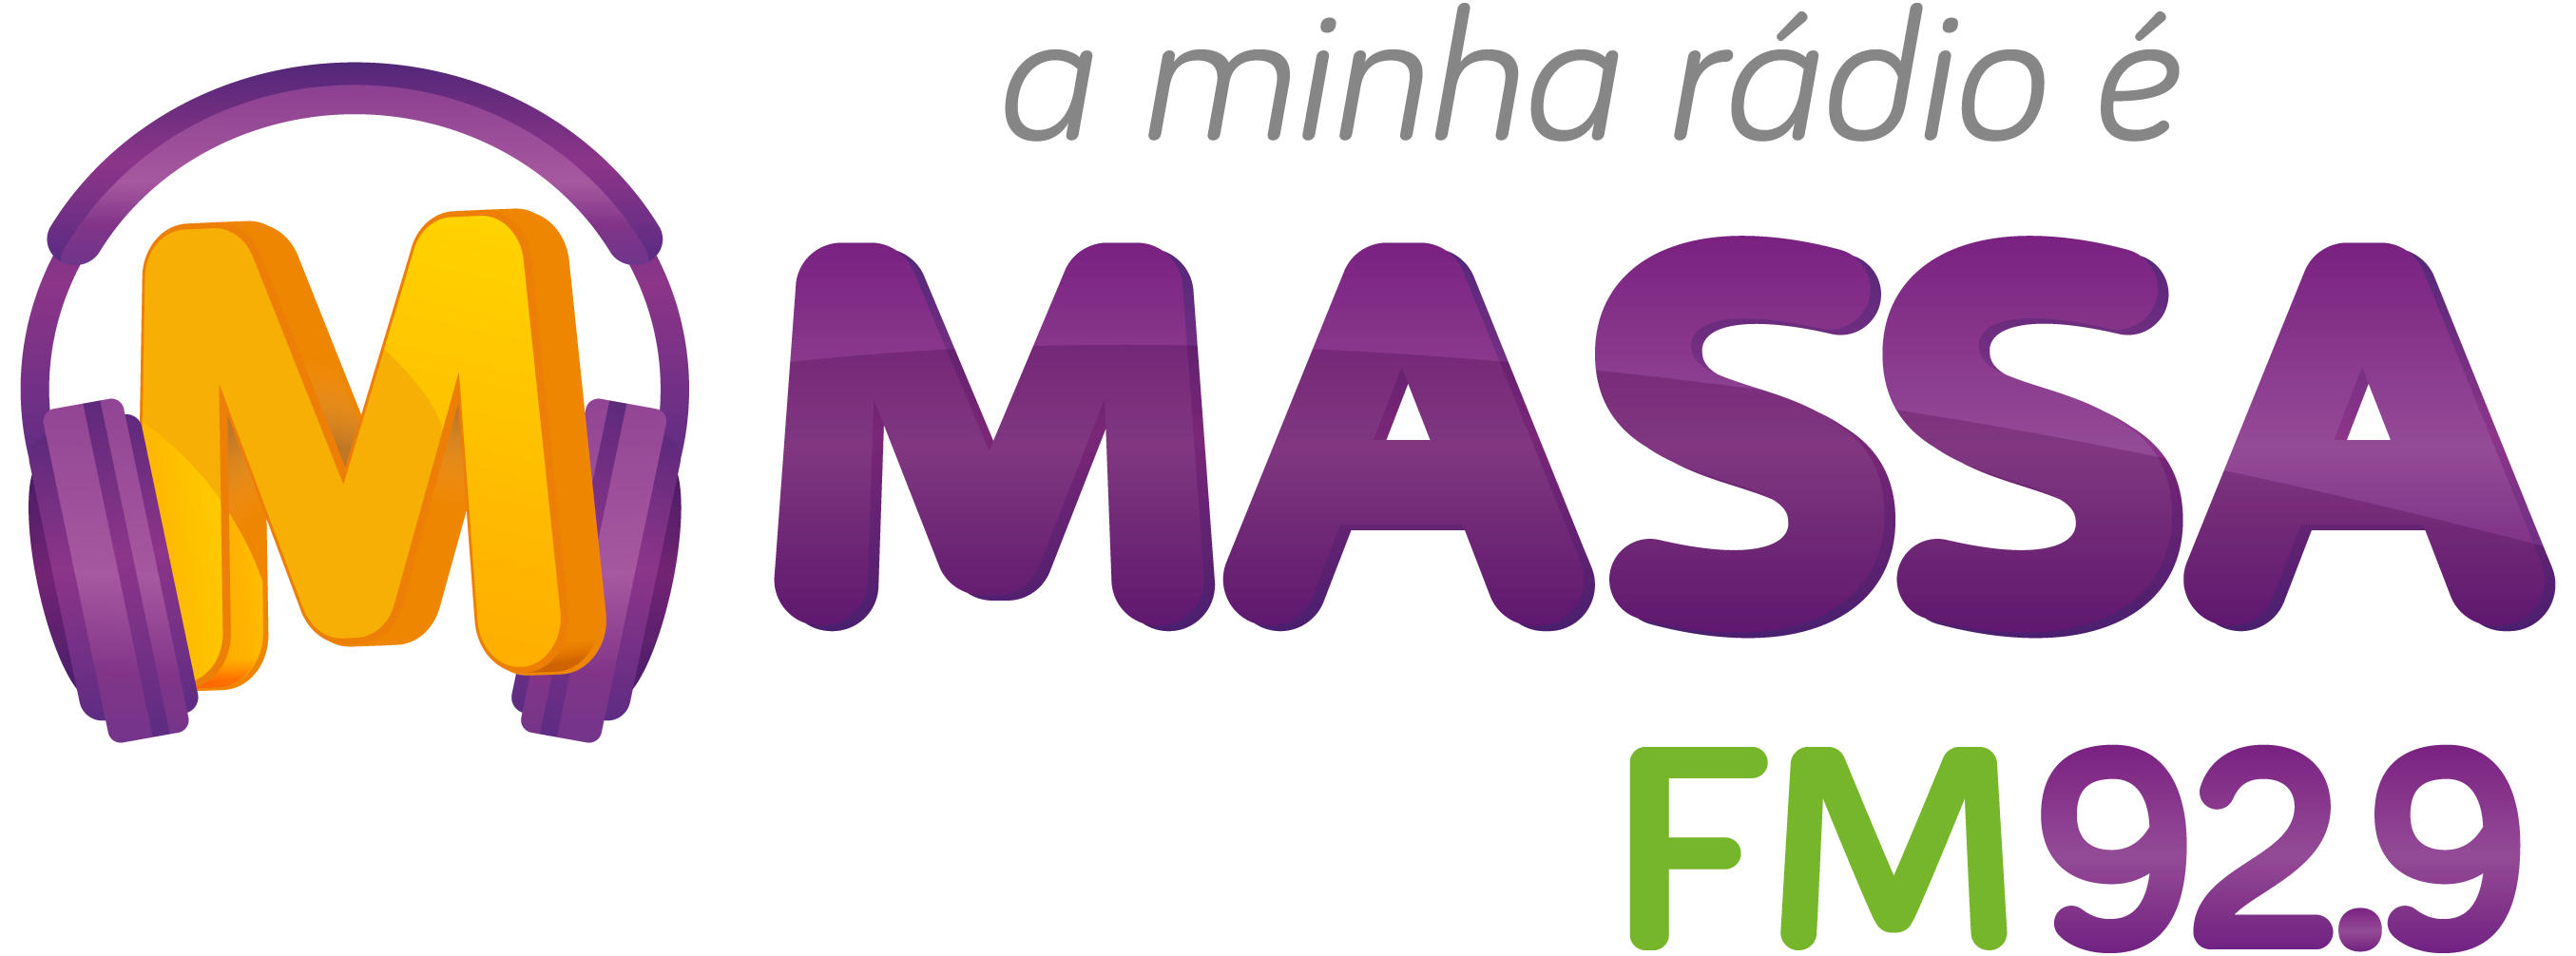 logotipo da Radio Massa